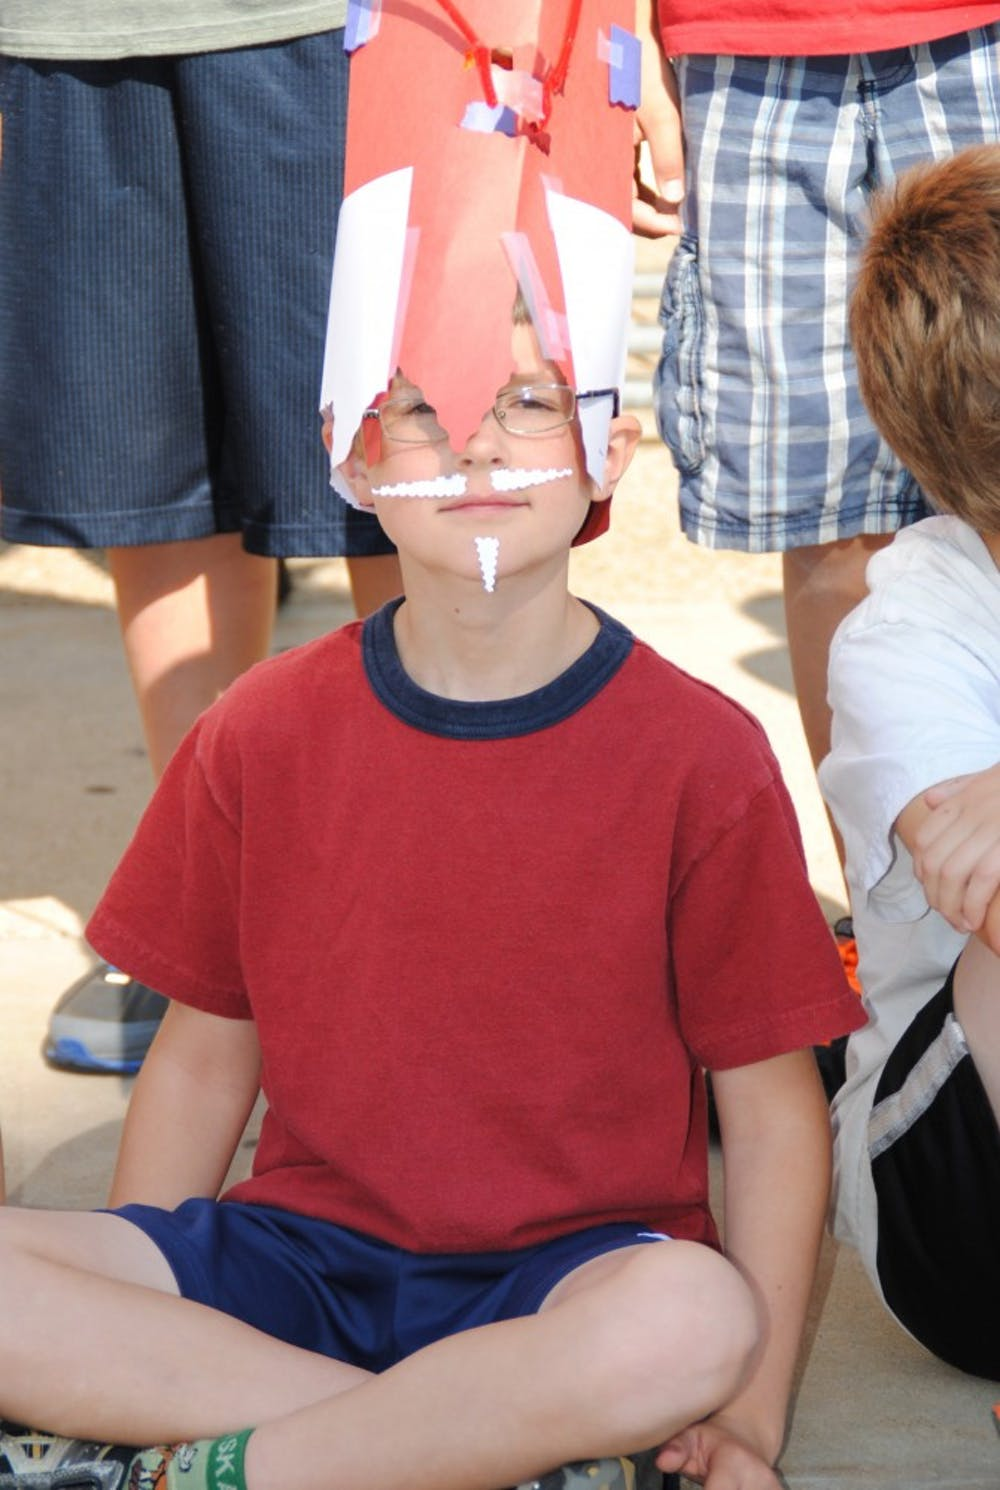 All ages take part in annual Constitution Day celebrations